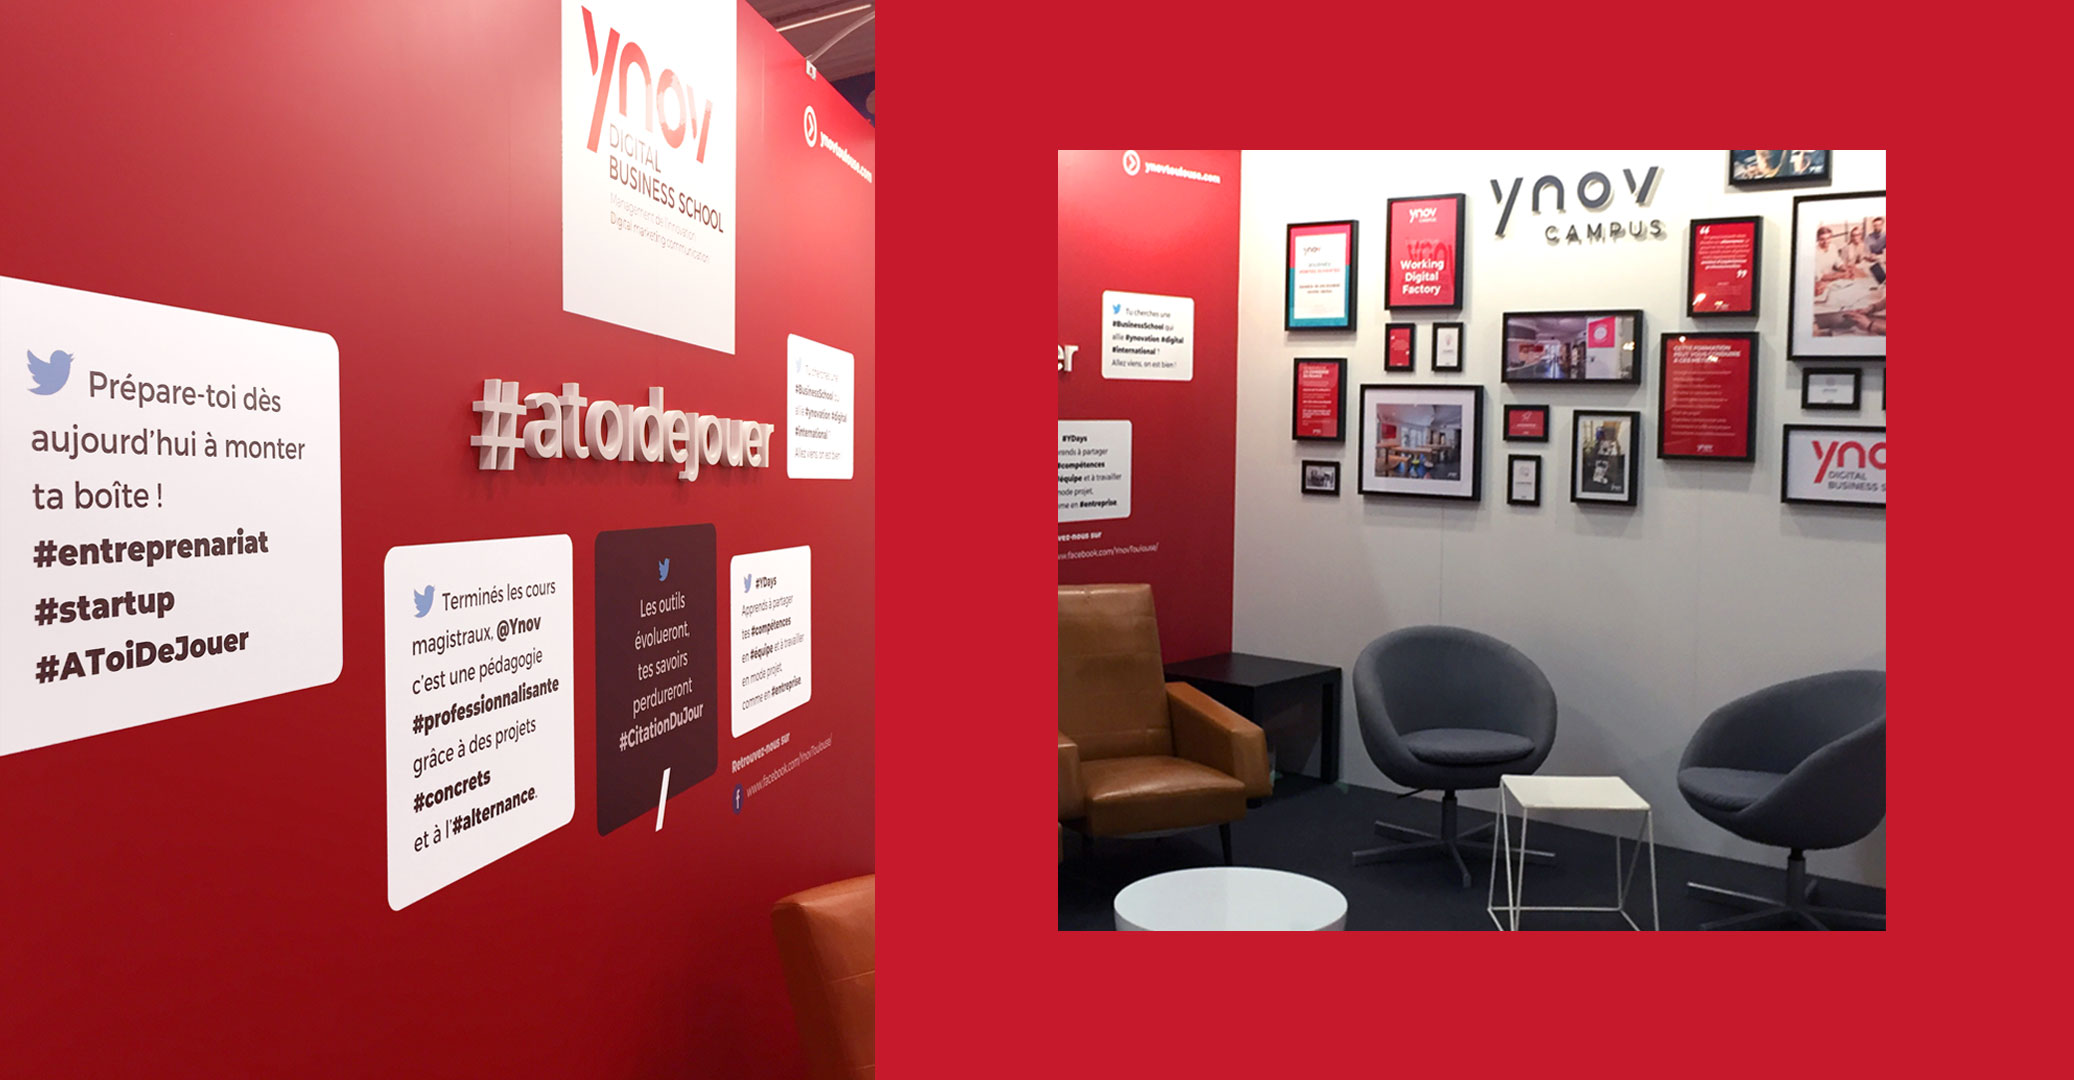 Ynov_Campus Toulouse